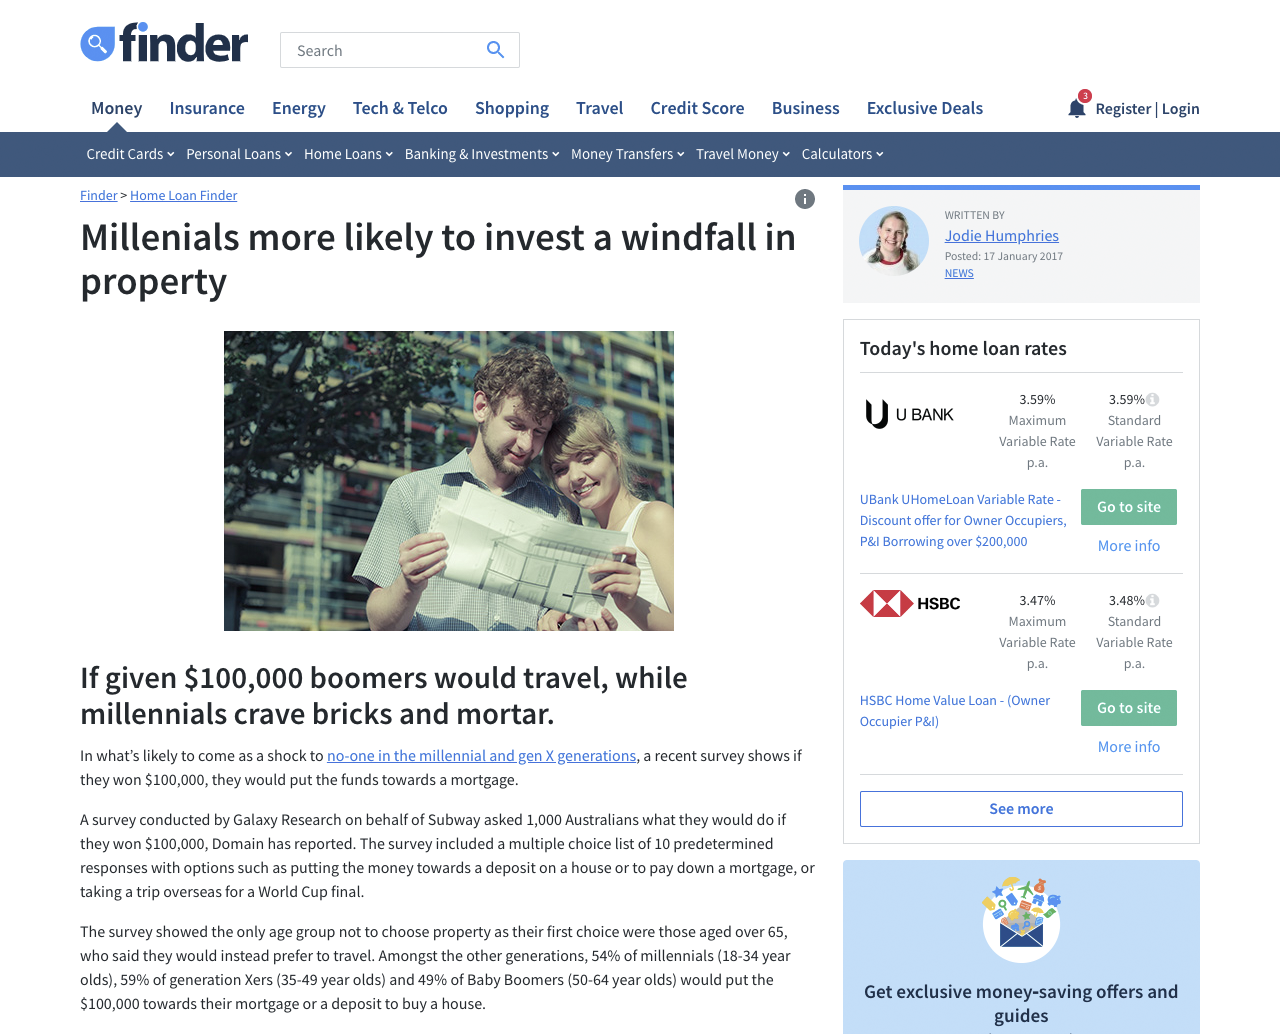 Millenials more likely to invest a windfall in property